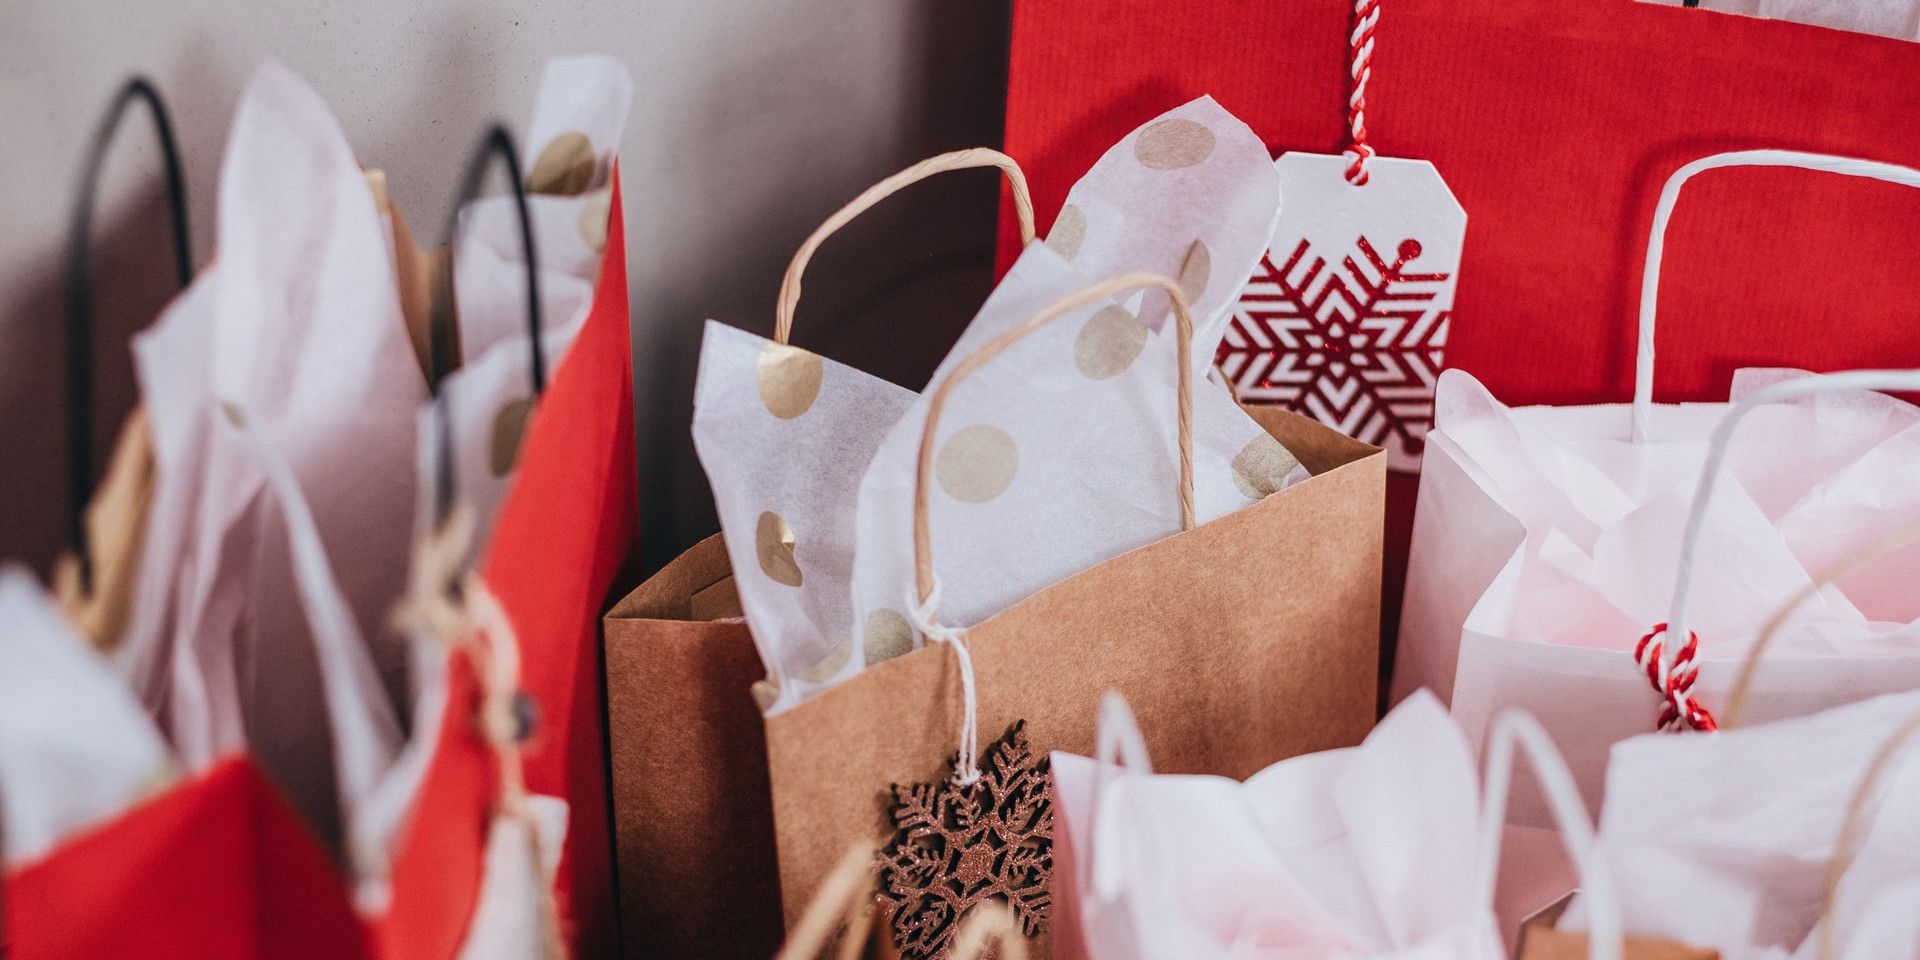 5 Amazon Selling Strategy Tips for the Holidays